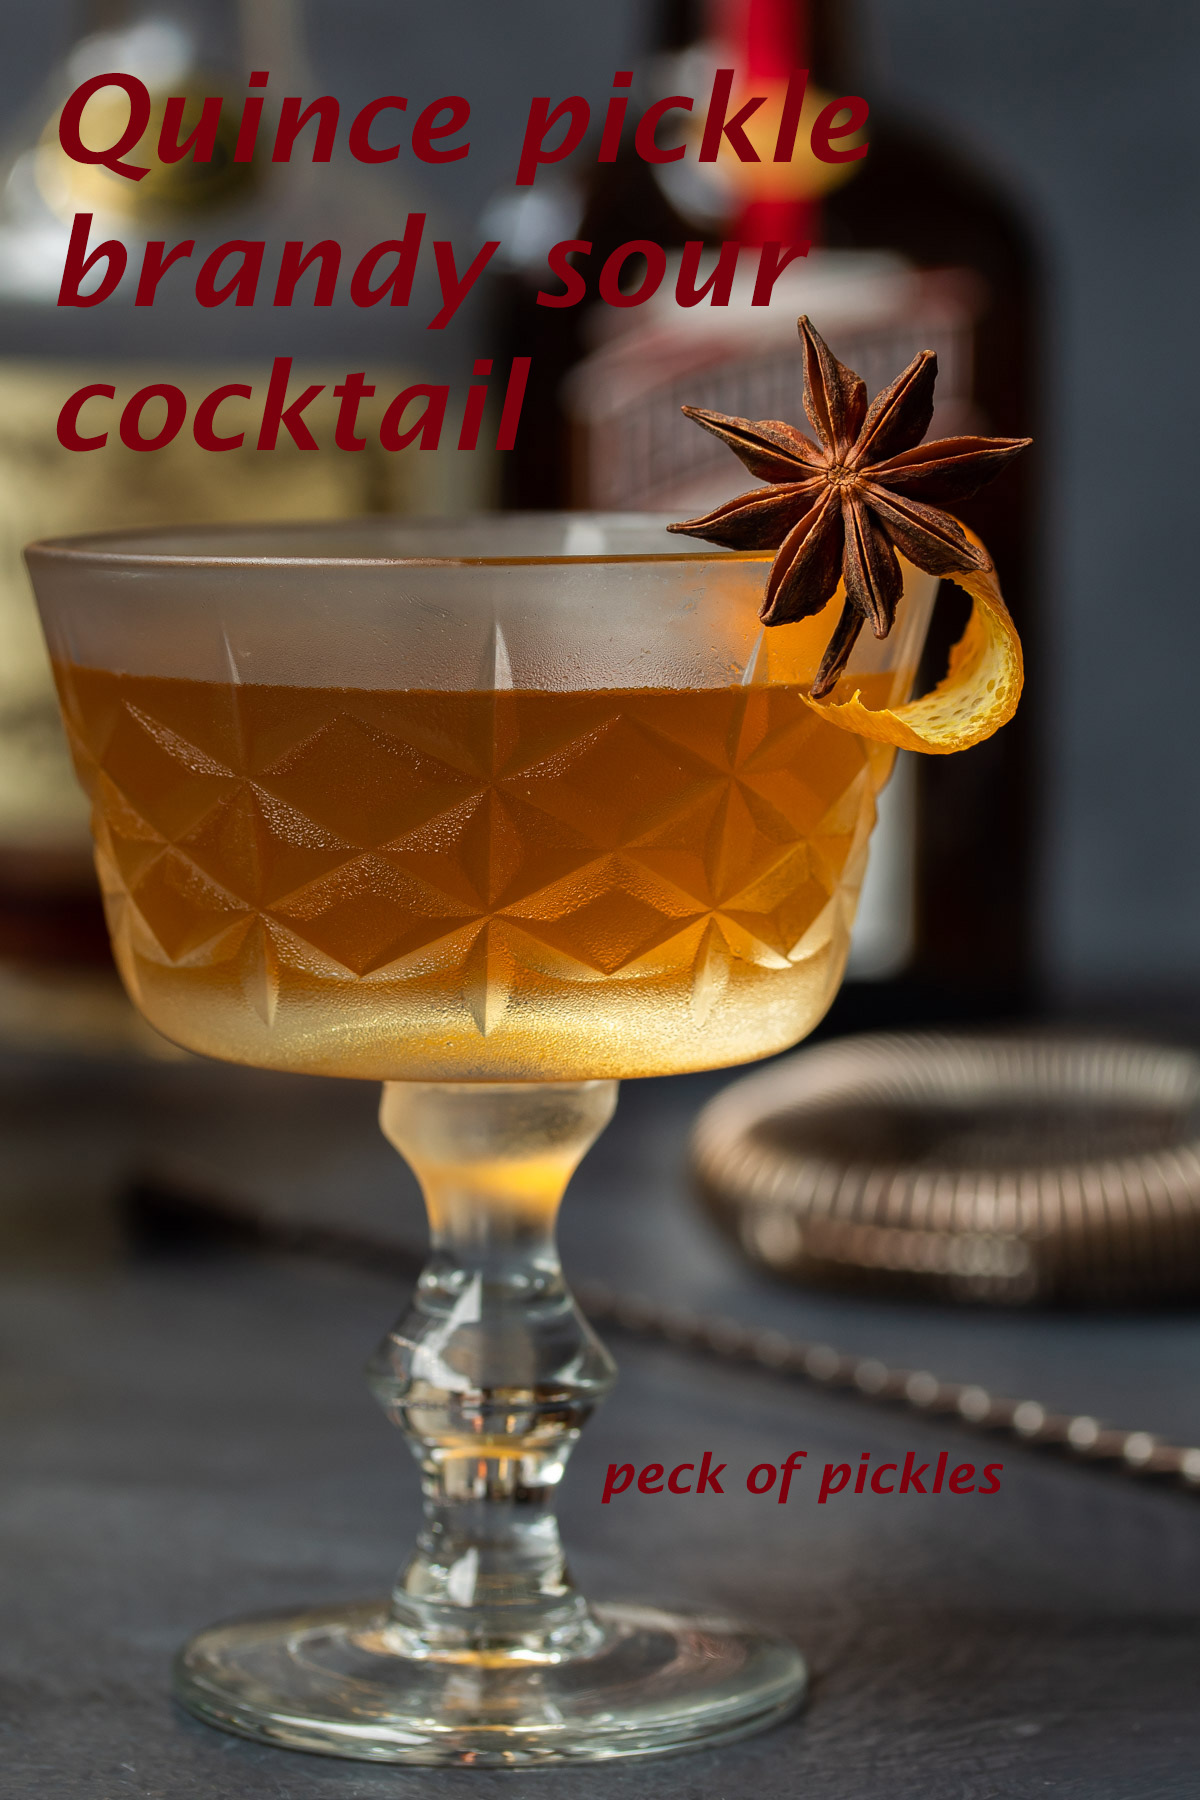 quince pickle brandy sour cocktail | peck of pickles